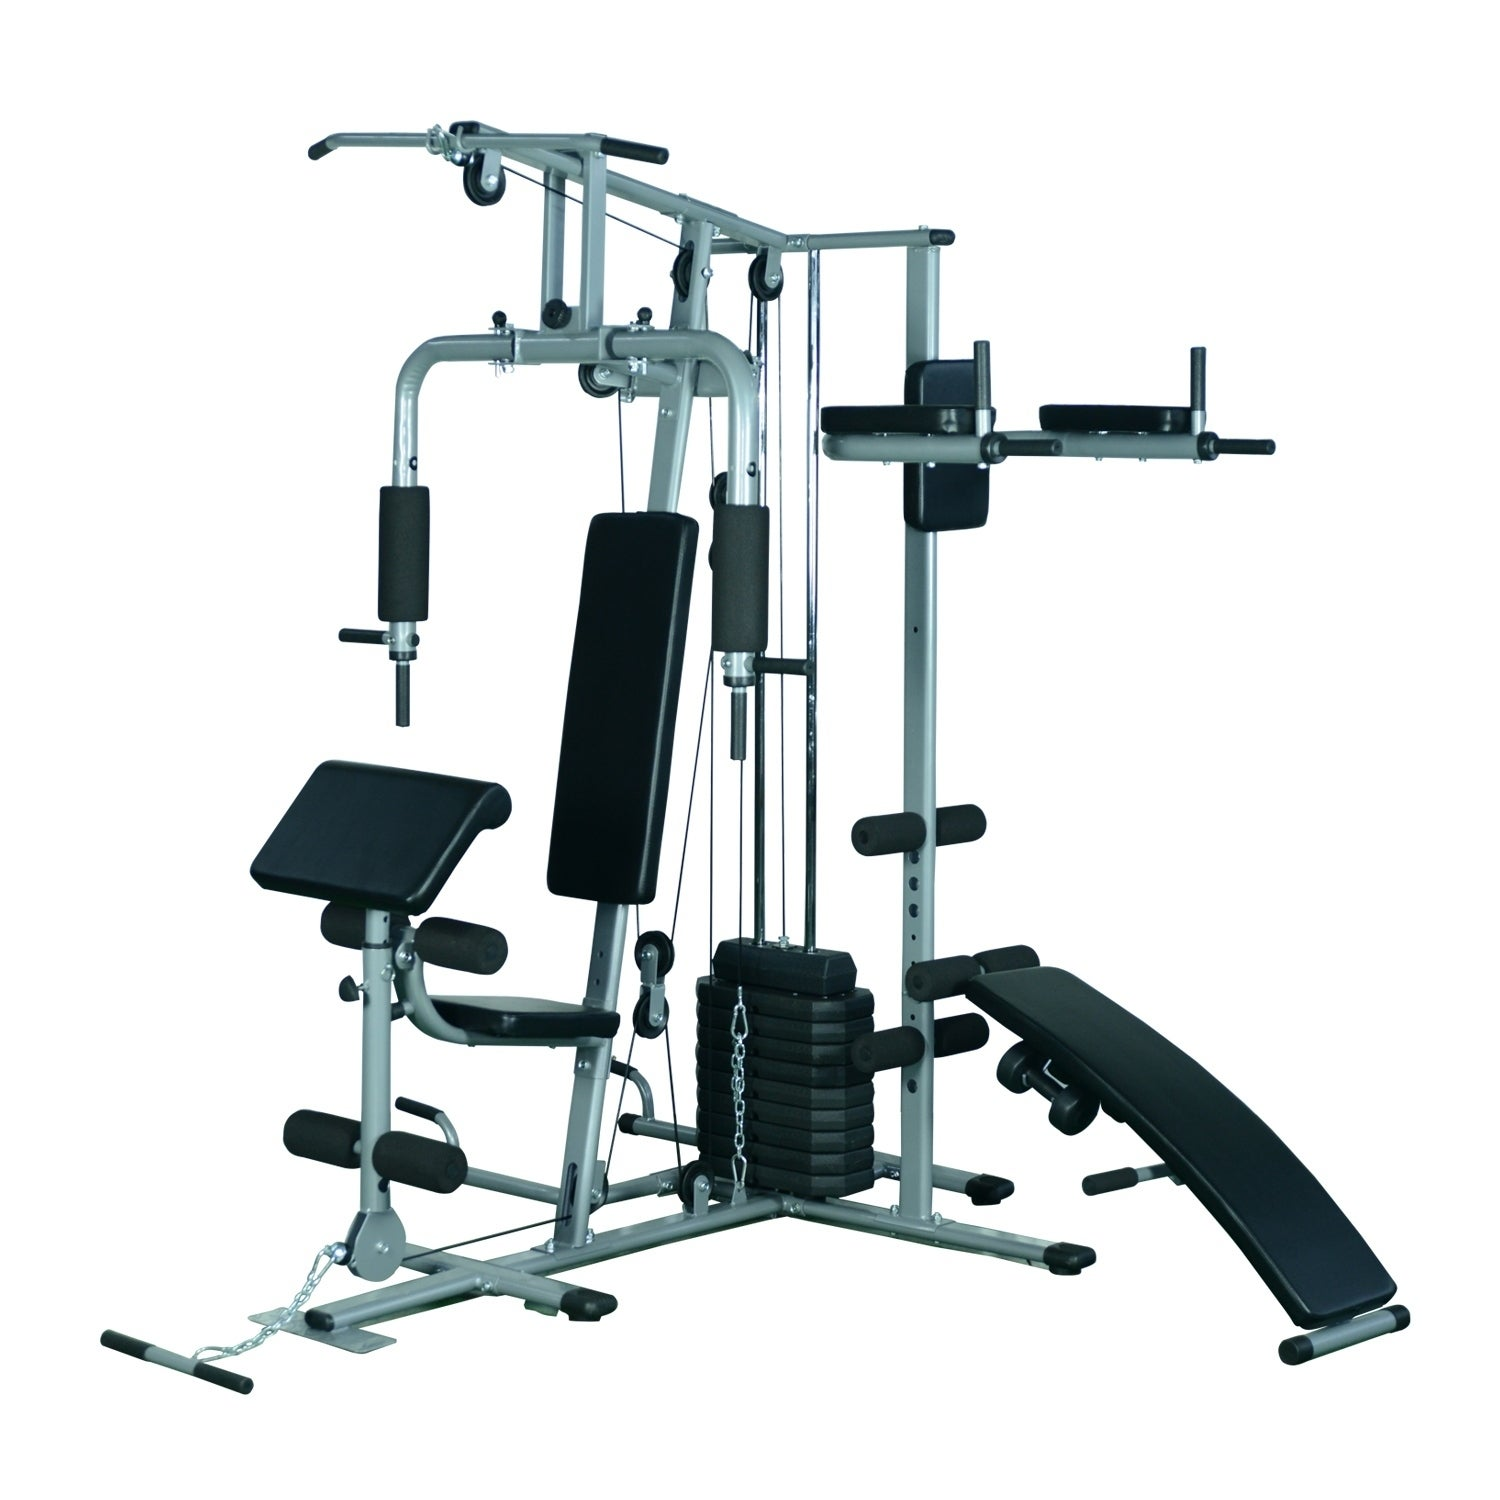 Soozier complete home fitness station gym machine with weight stack